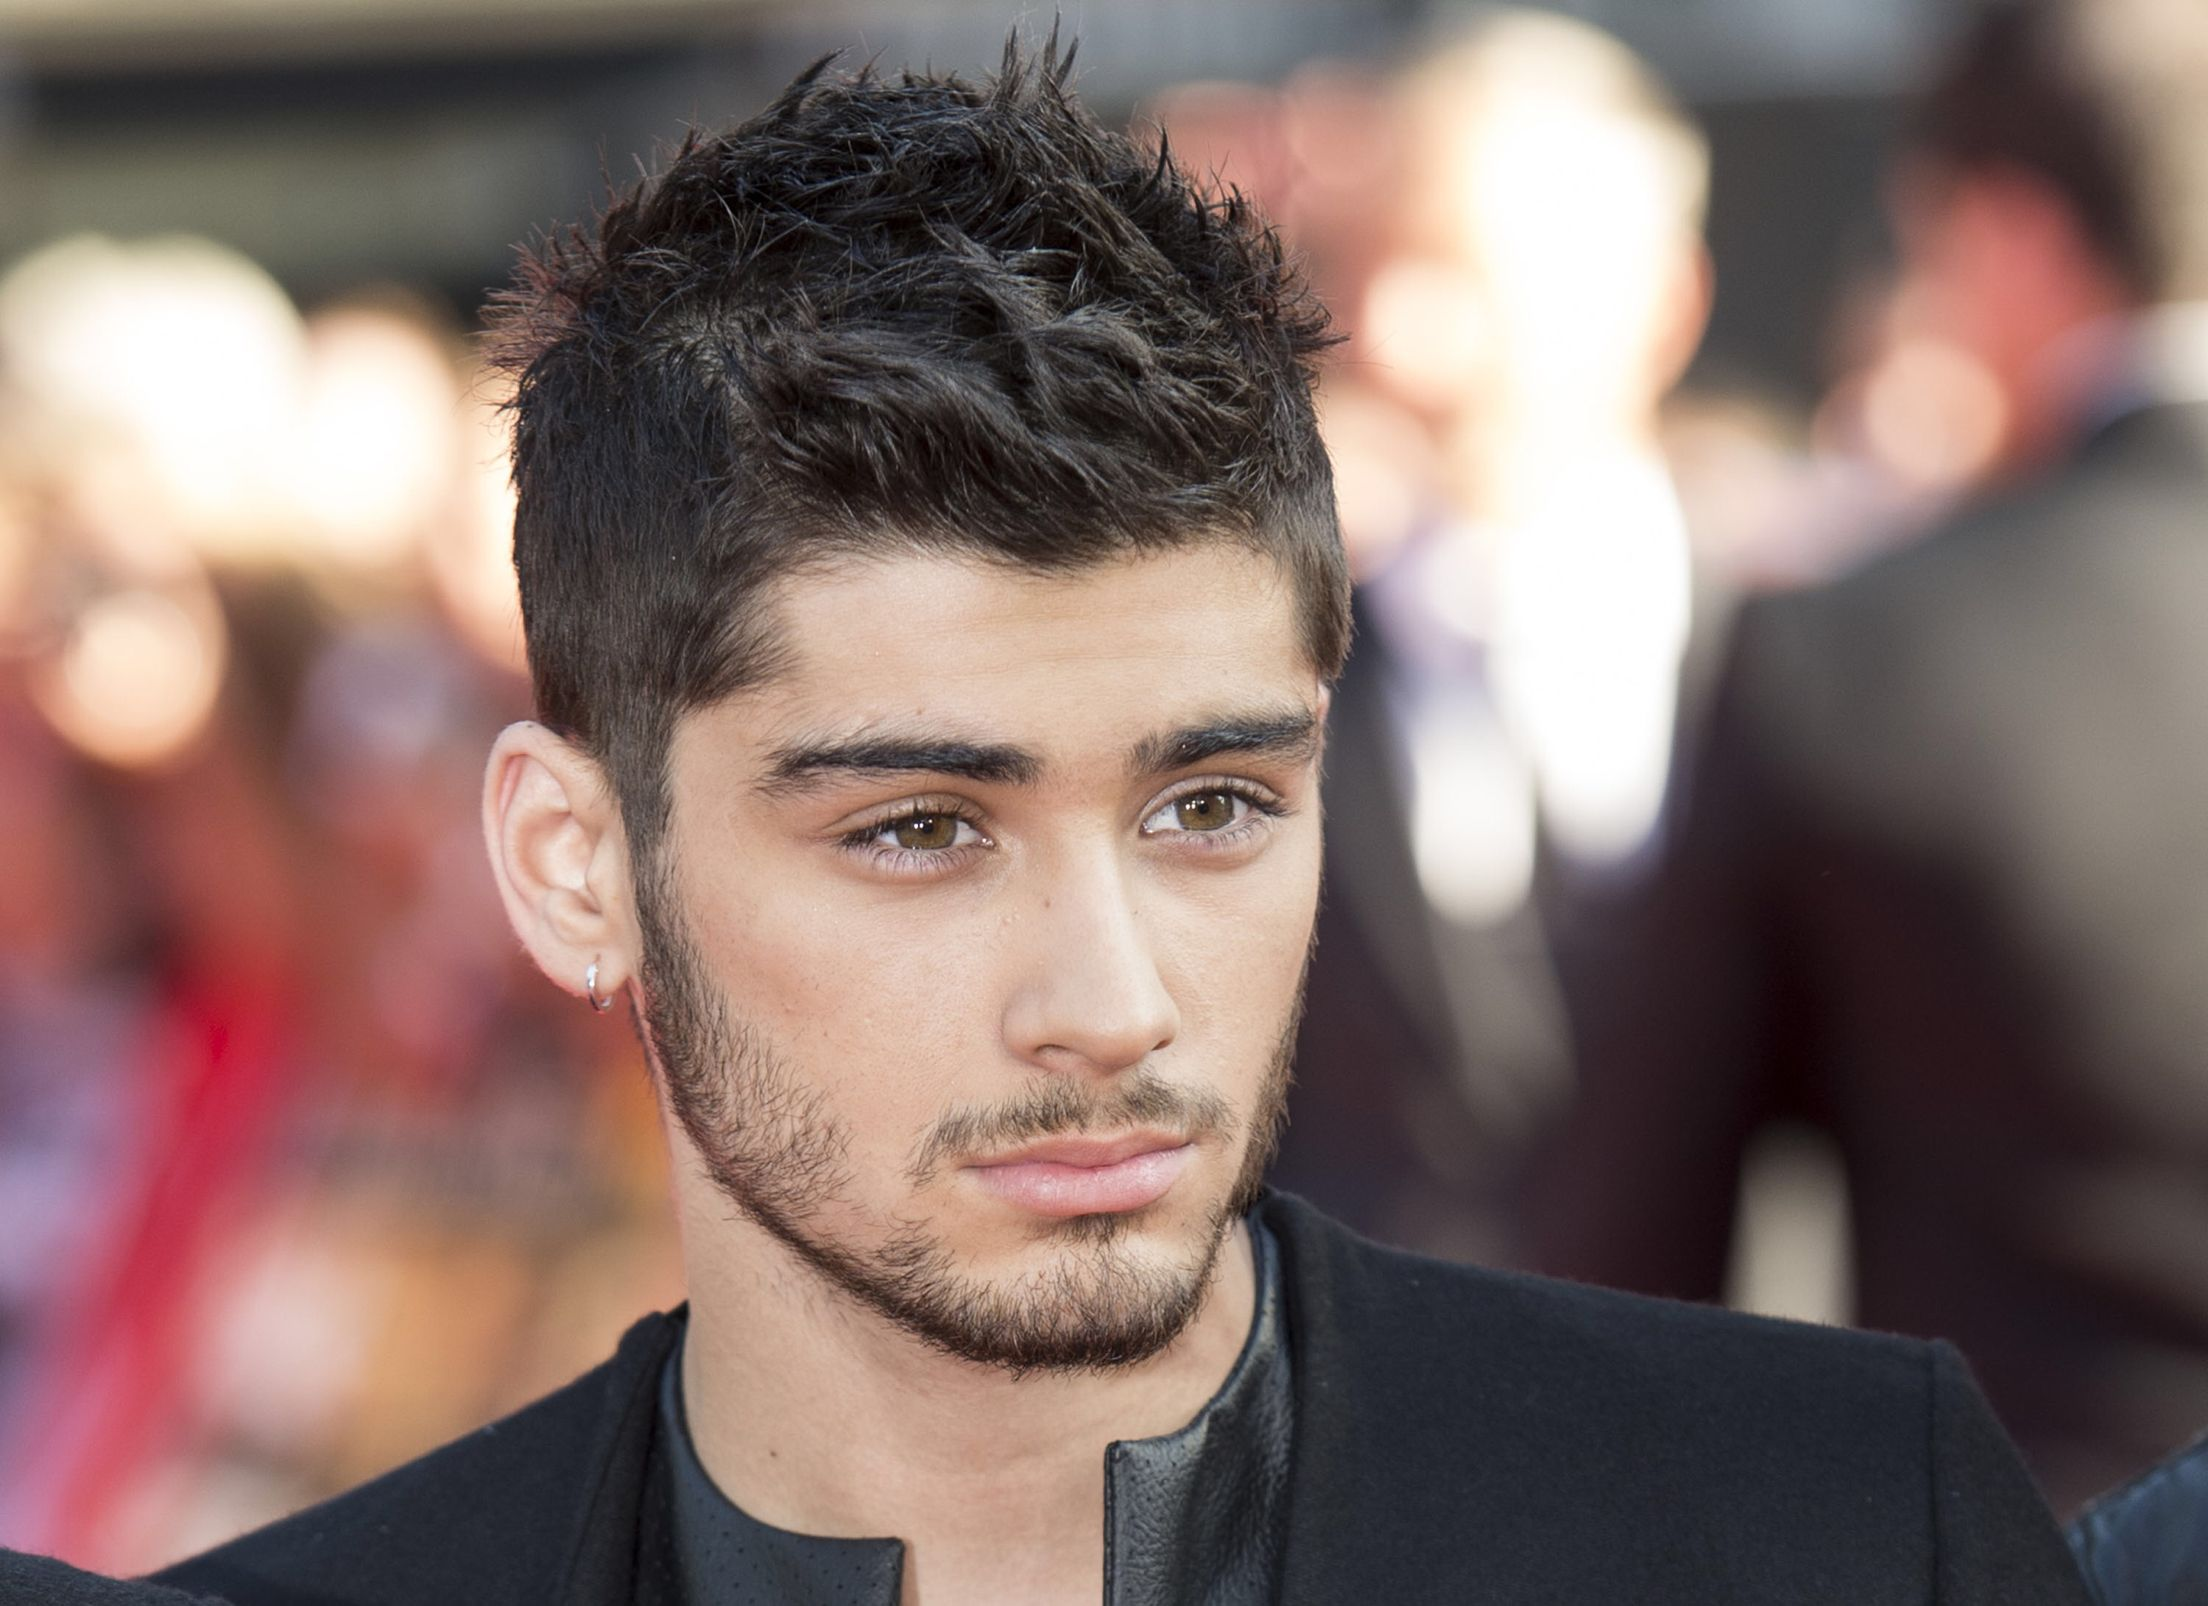 Zayn Malik Officially Leaves the world biggest band One